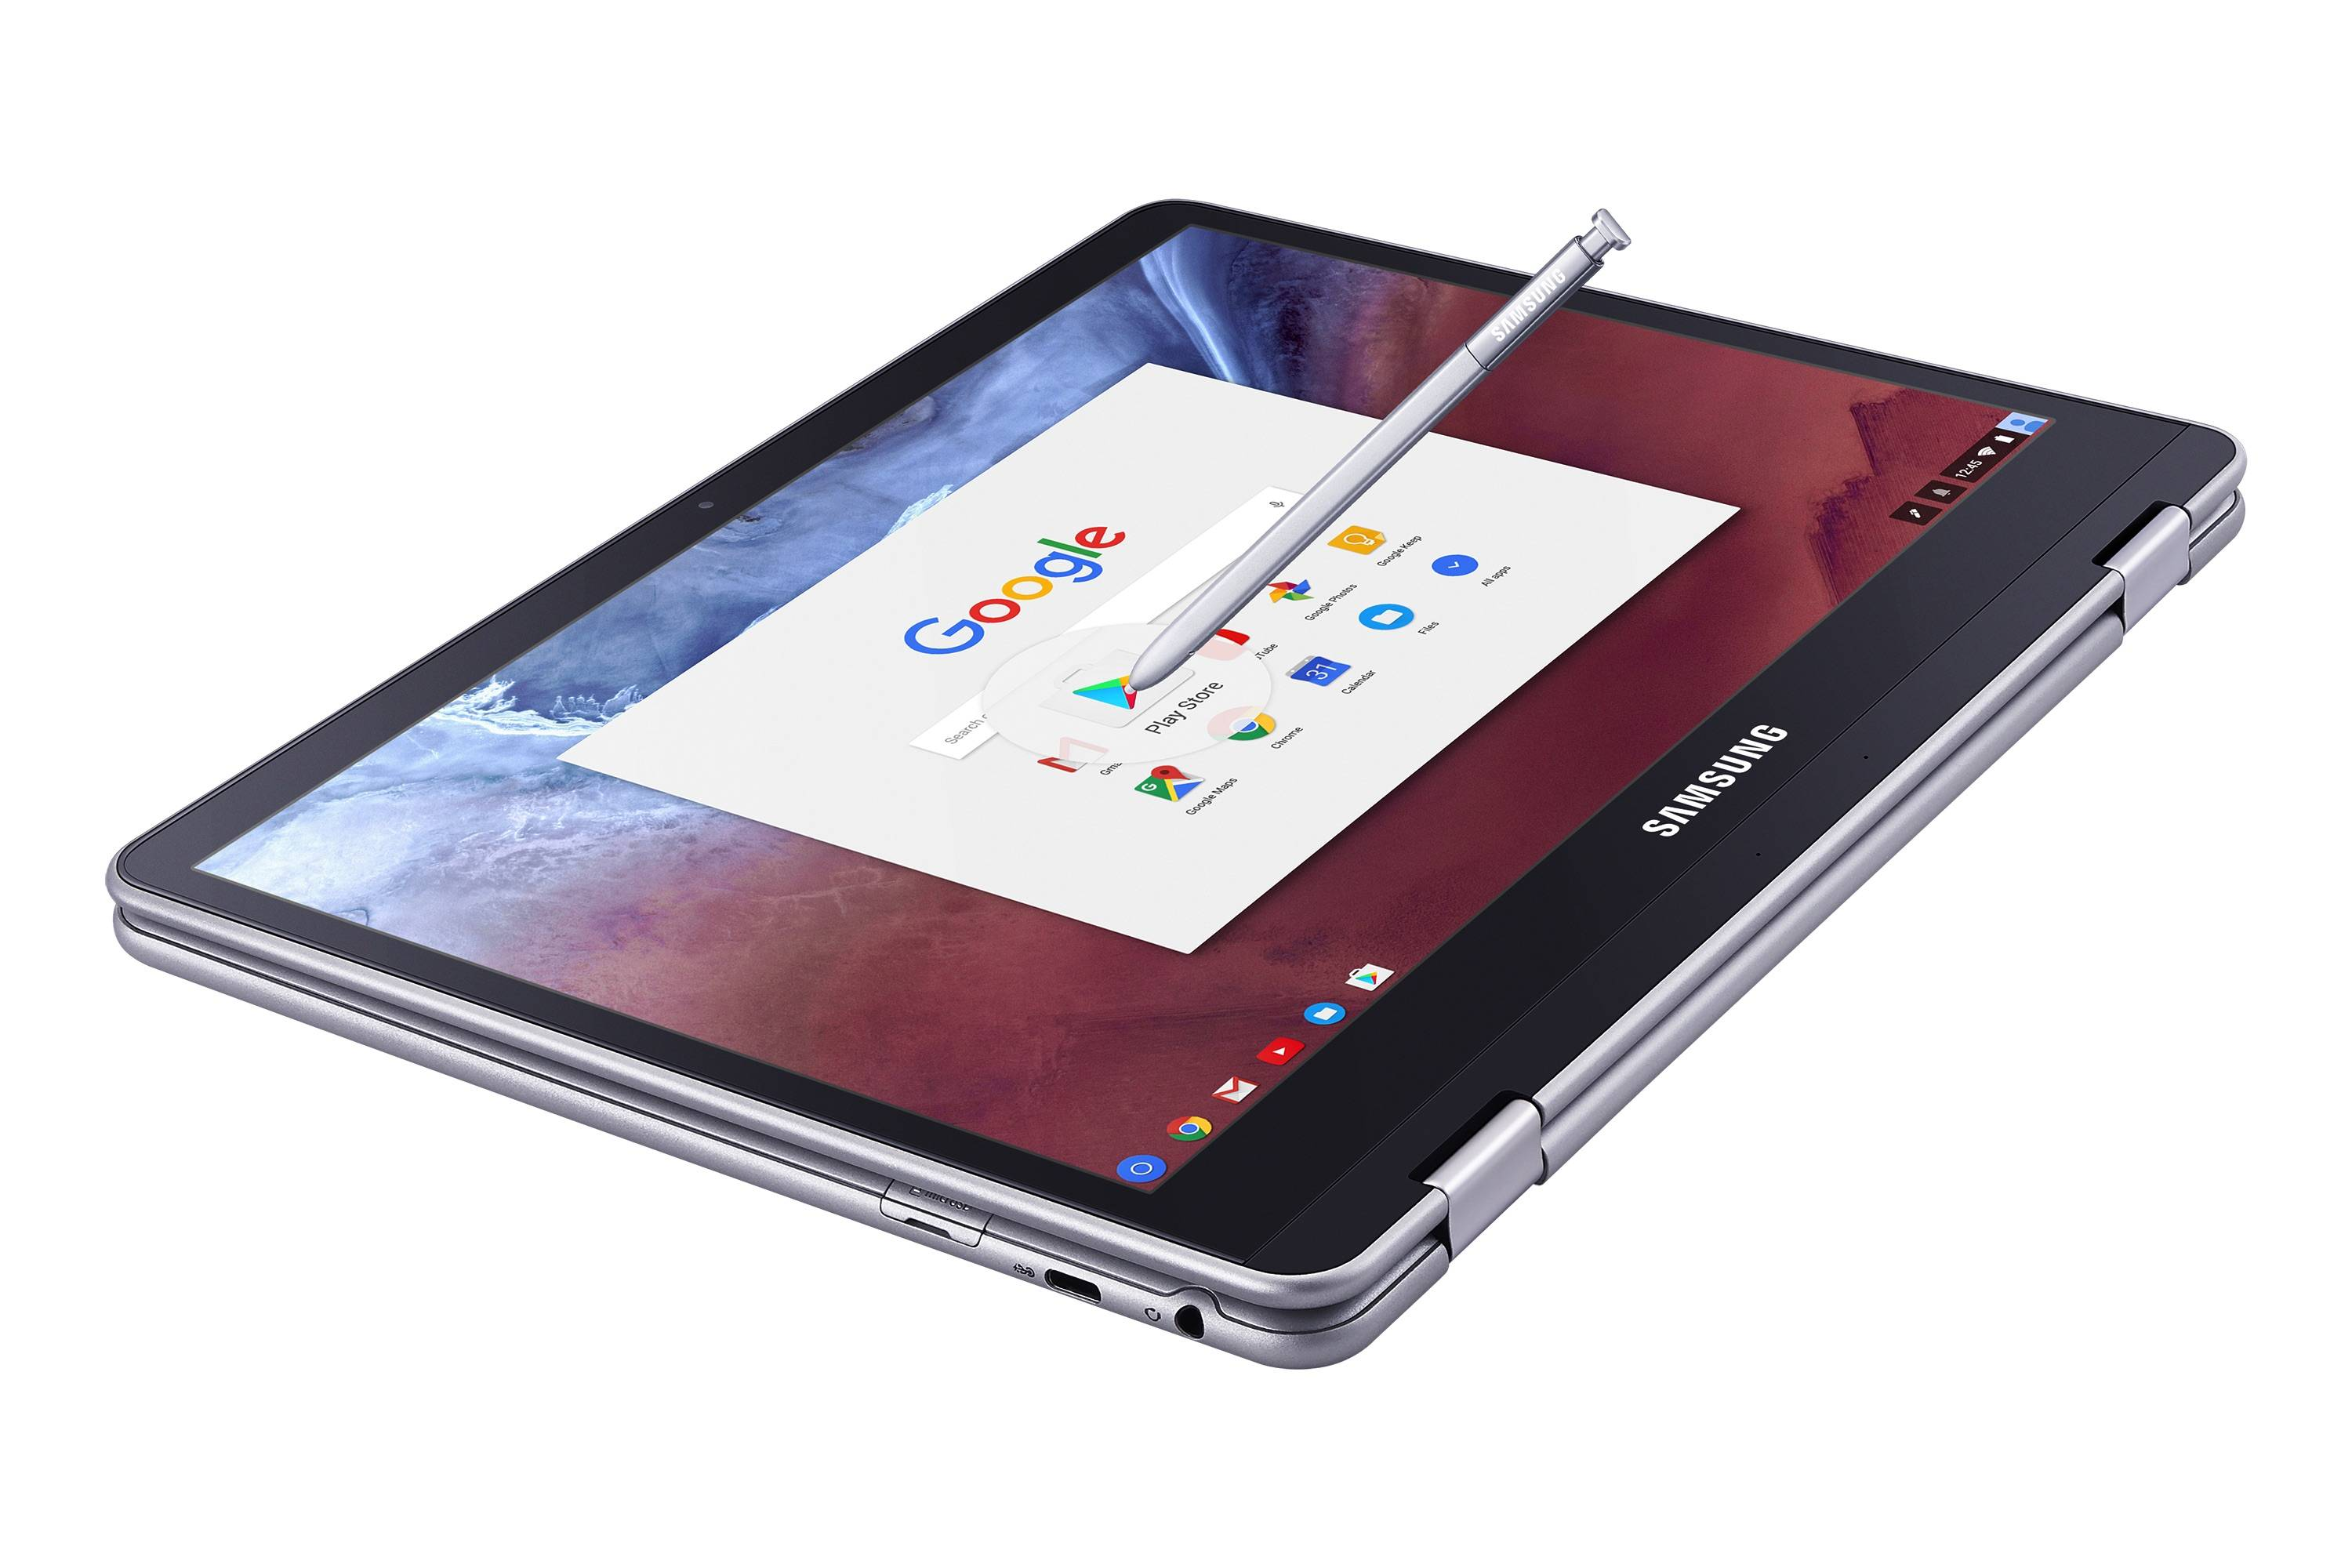 Samsung rolls out new Chromebook Plus, Chromebook Pro at CES